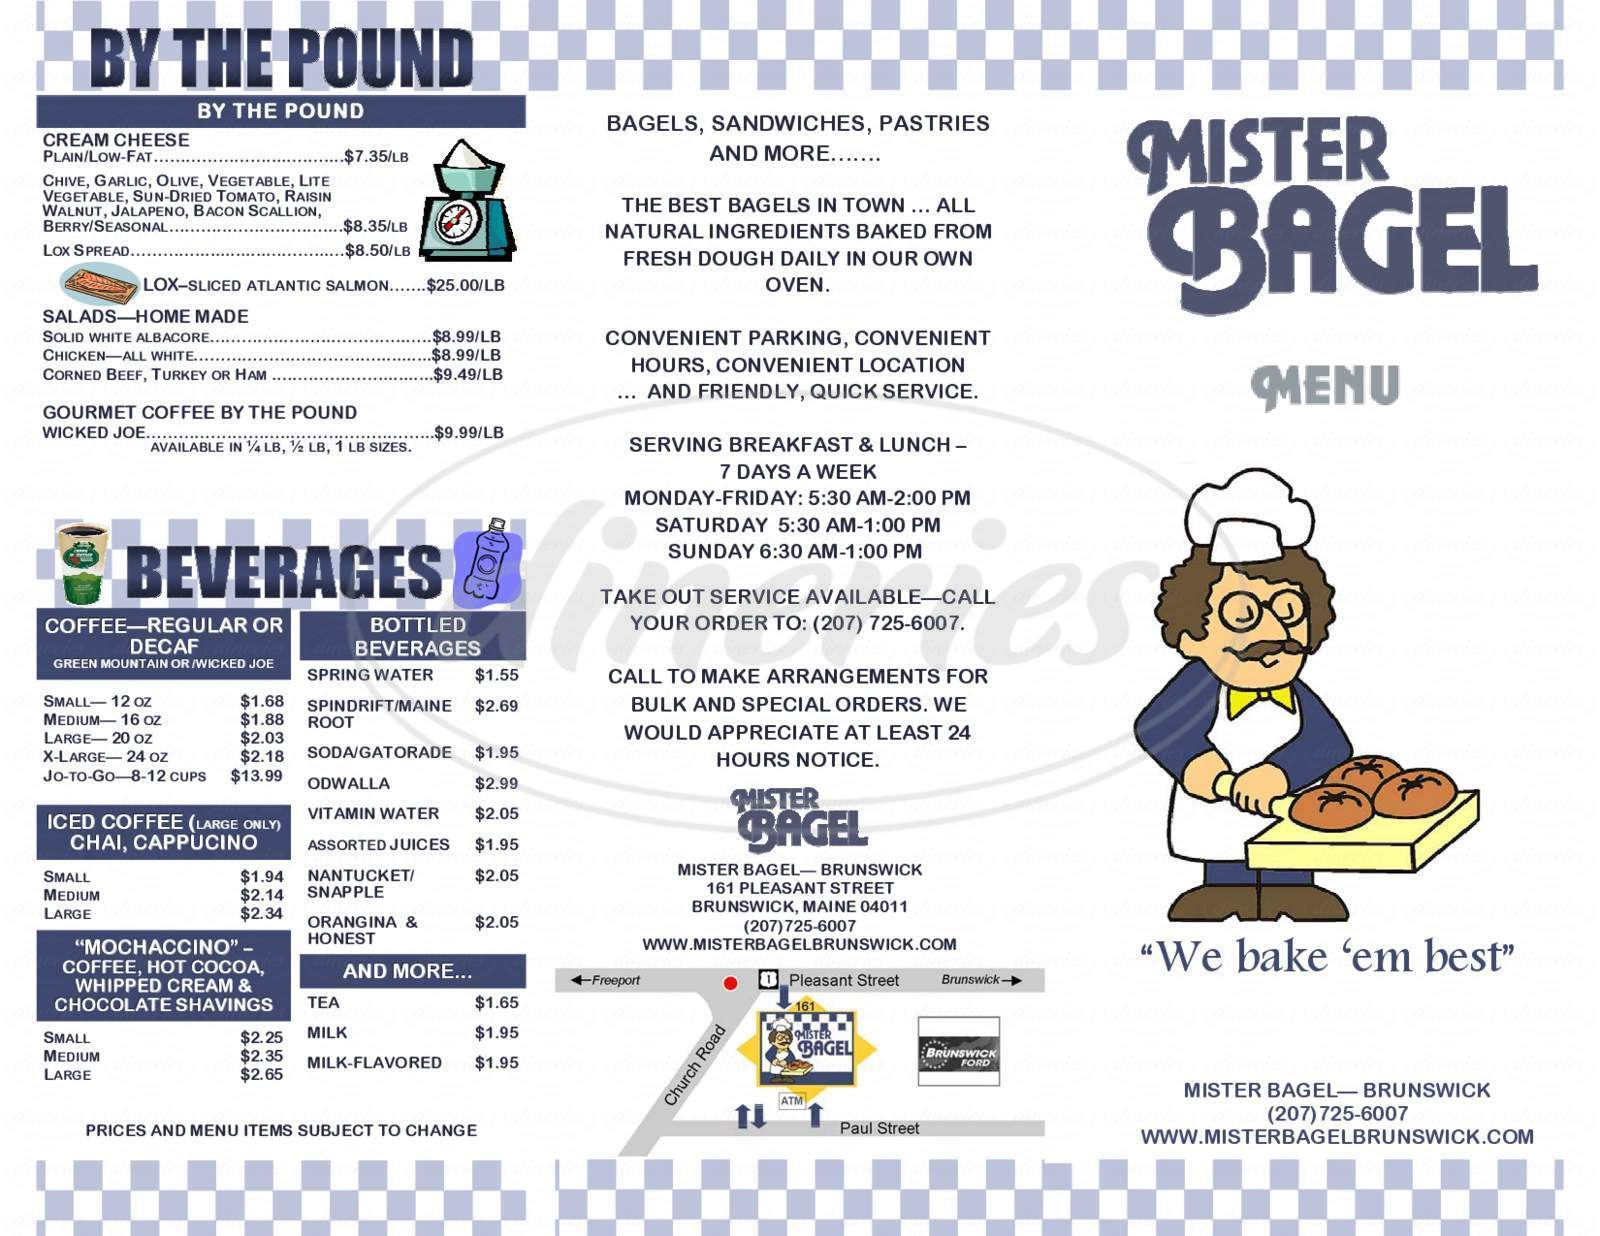 menu for Mister Bagel